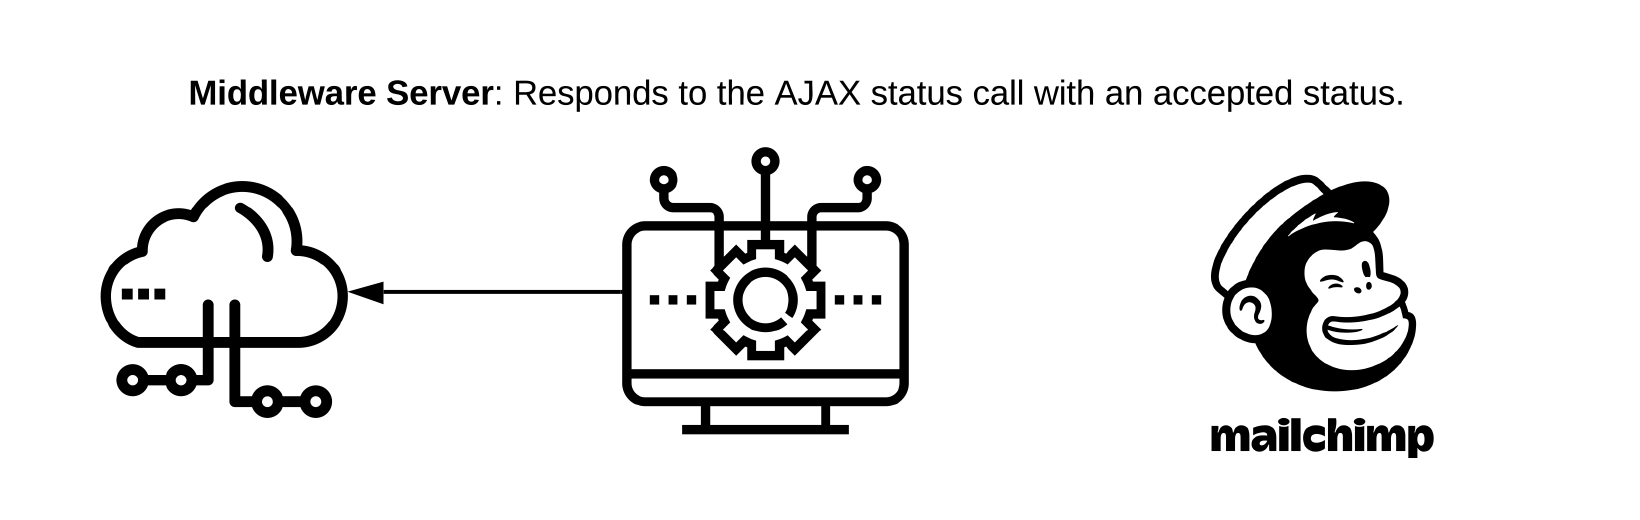 "Middleware Server: Responds to the AJAX status call with an ""accepted"" status"